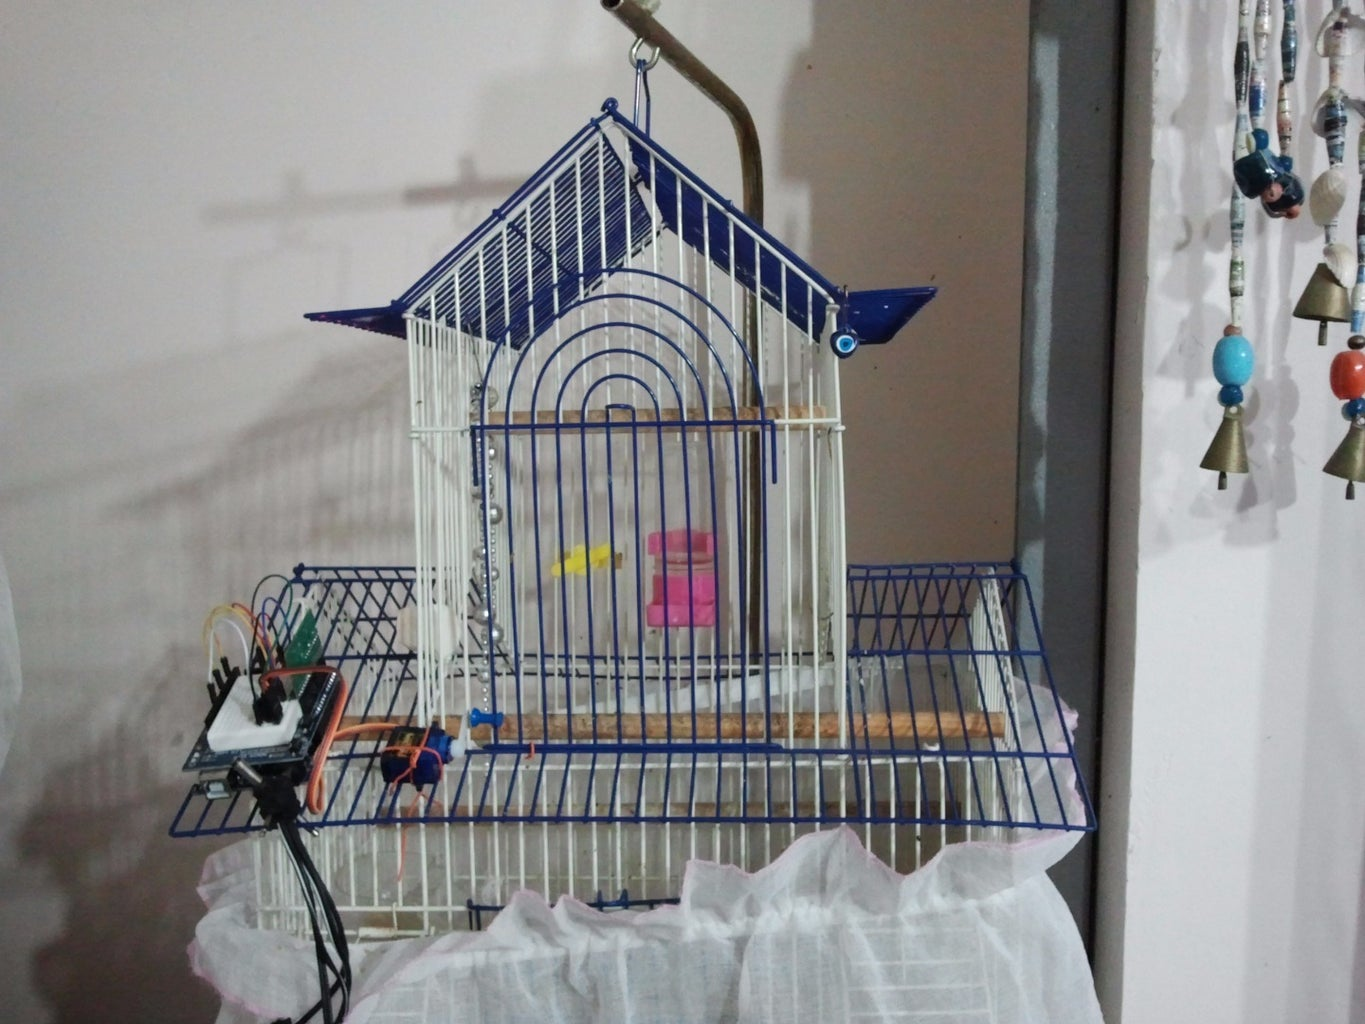 Connecting Servo With the Door of the Cage